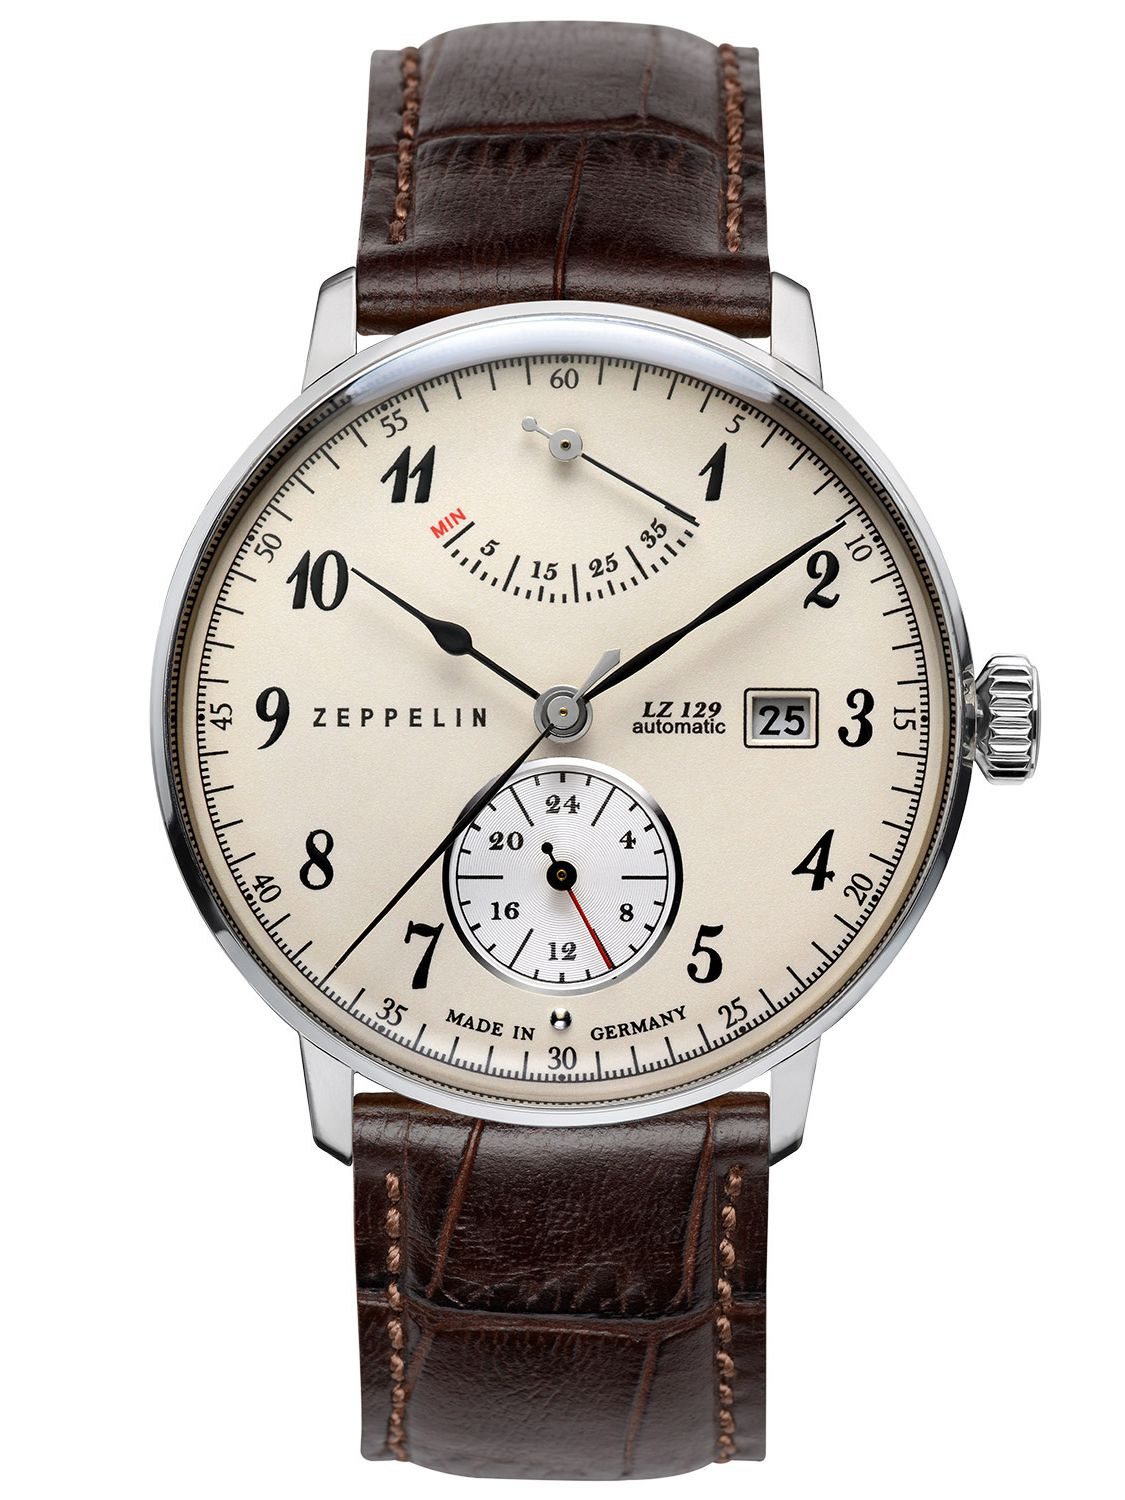 ZEPPELIN Hindenburg Automatic Gents Watch 7060-4 • uhrcenter